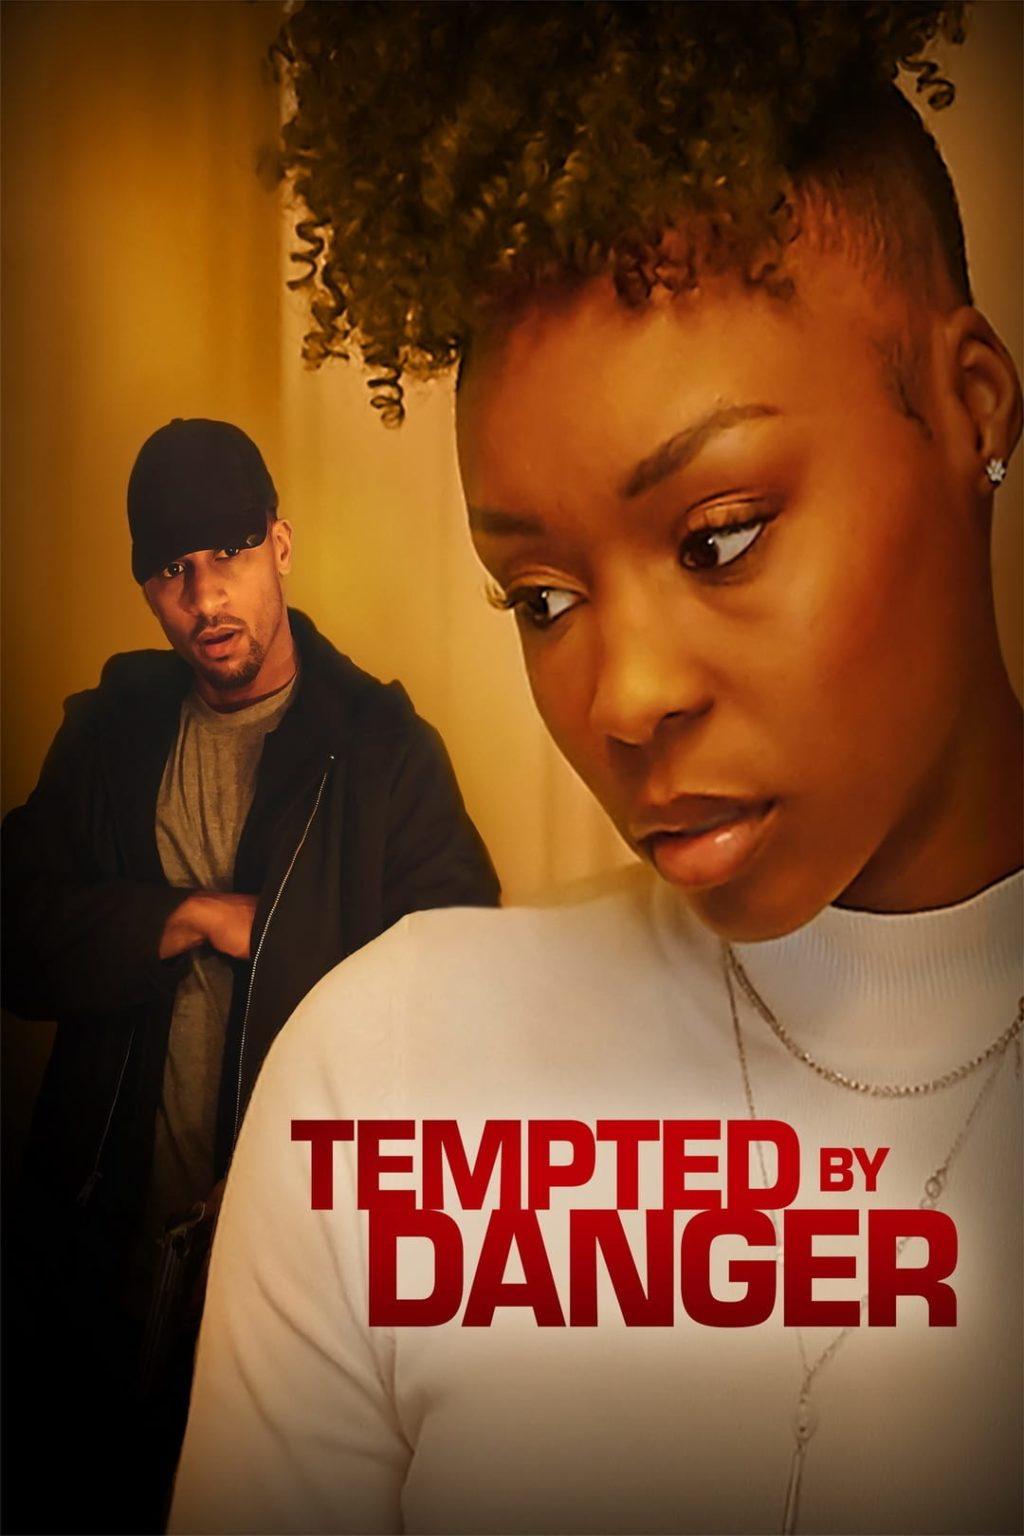 Tempted by Danger 2020 English 720p HDRip ESubs 800MB | 280MB